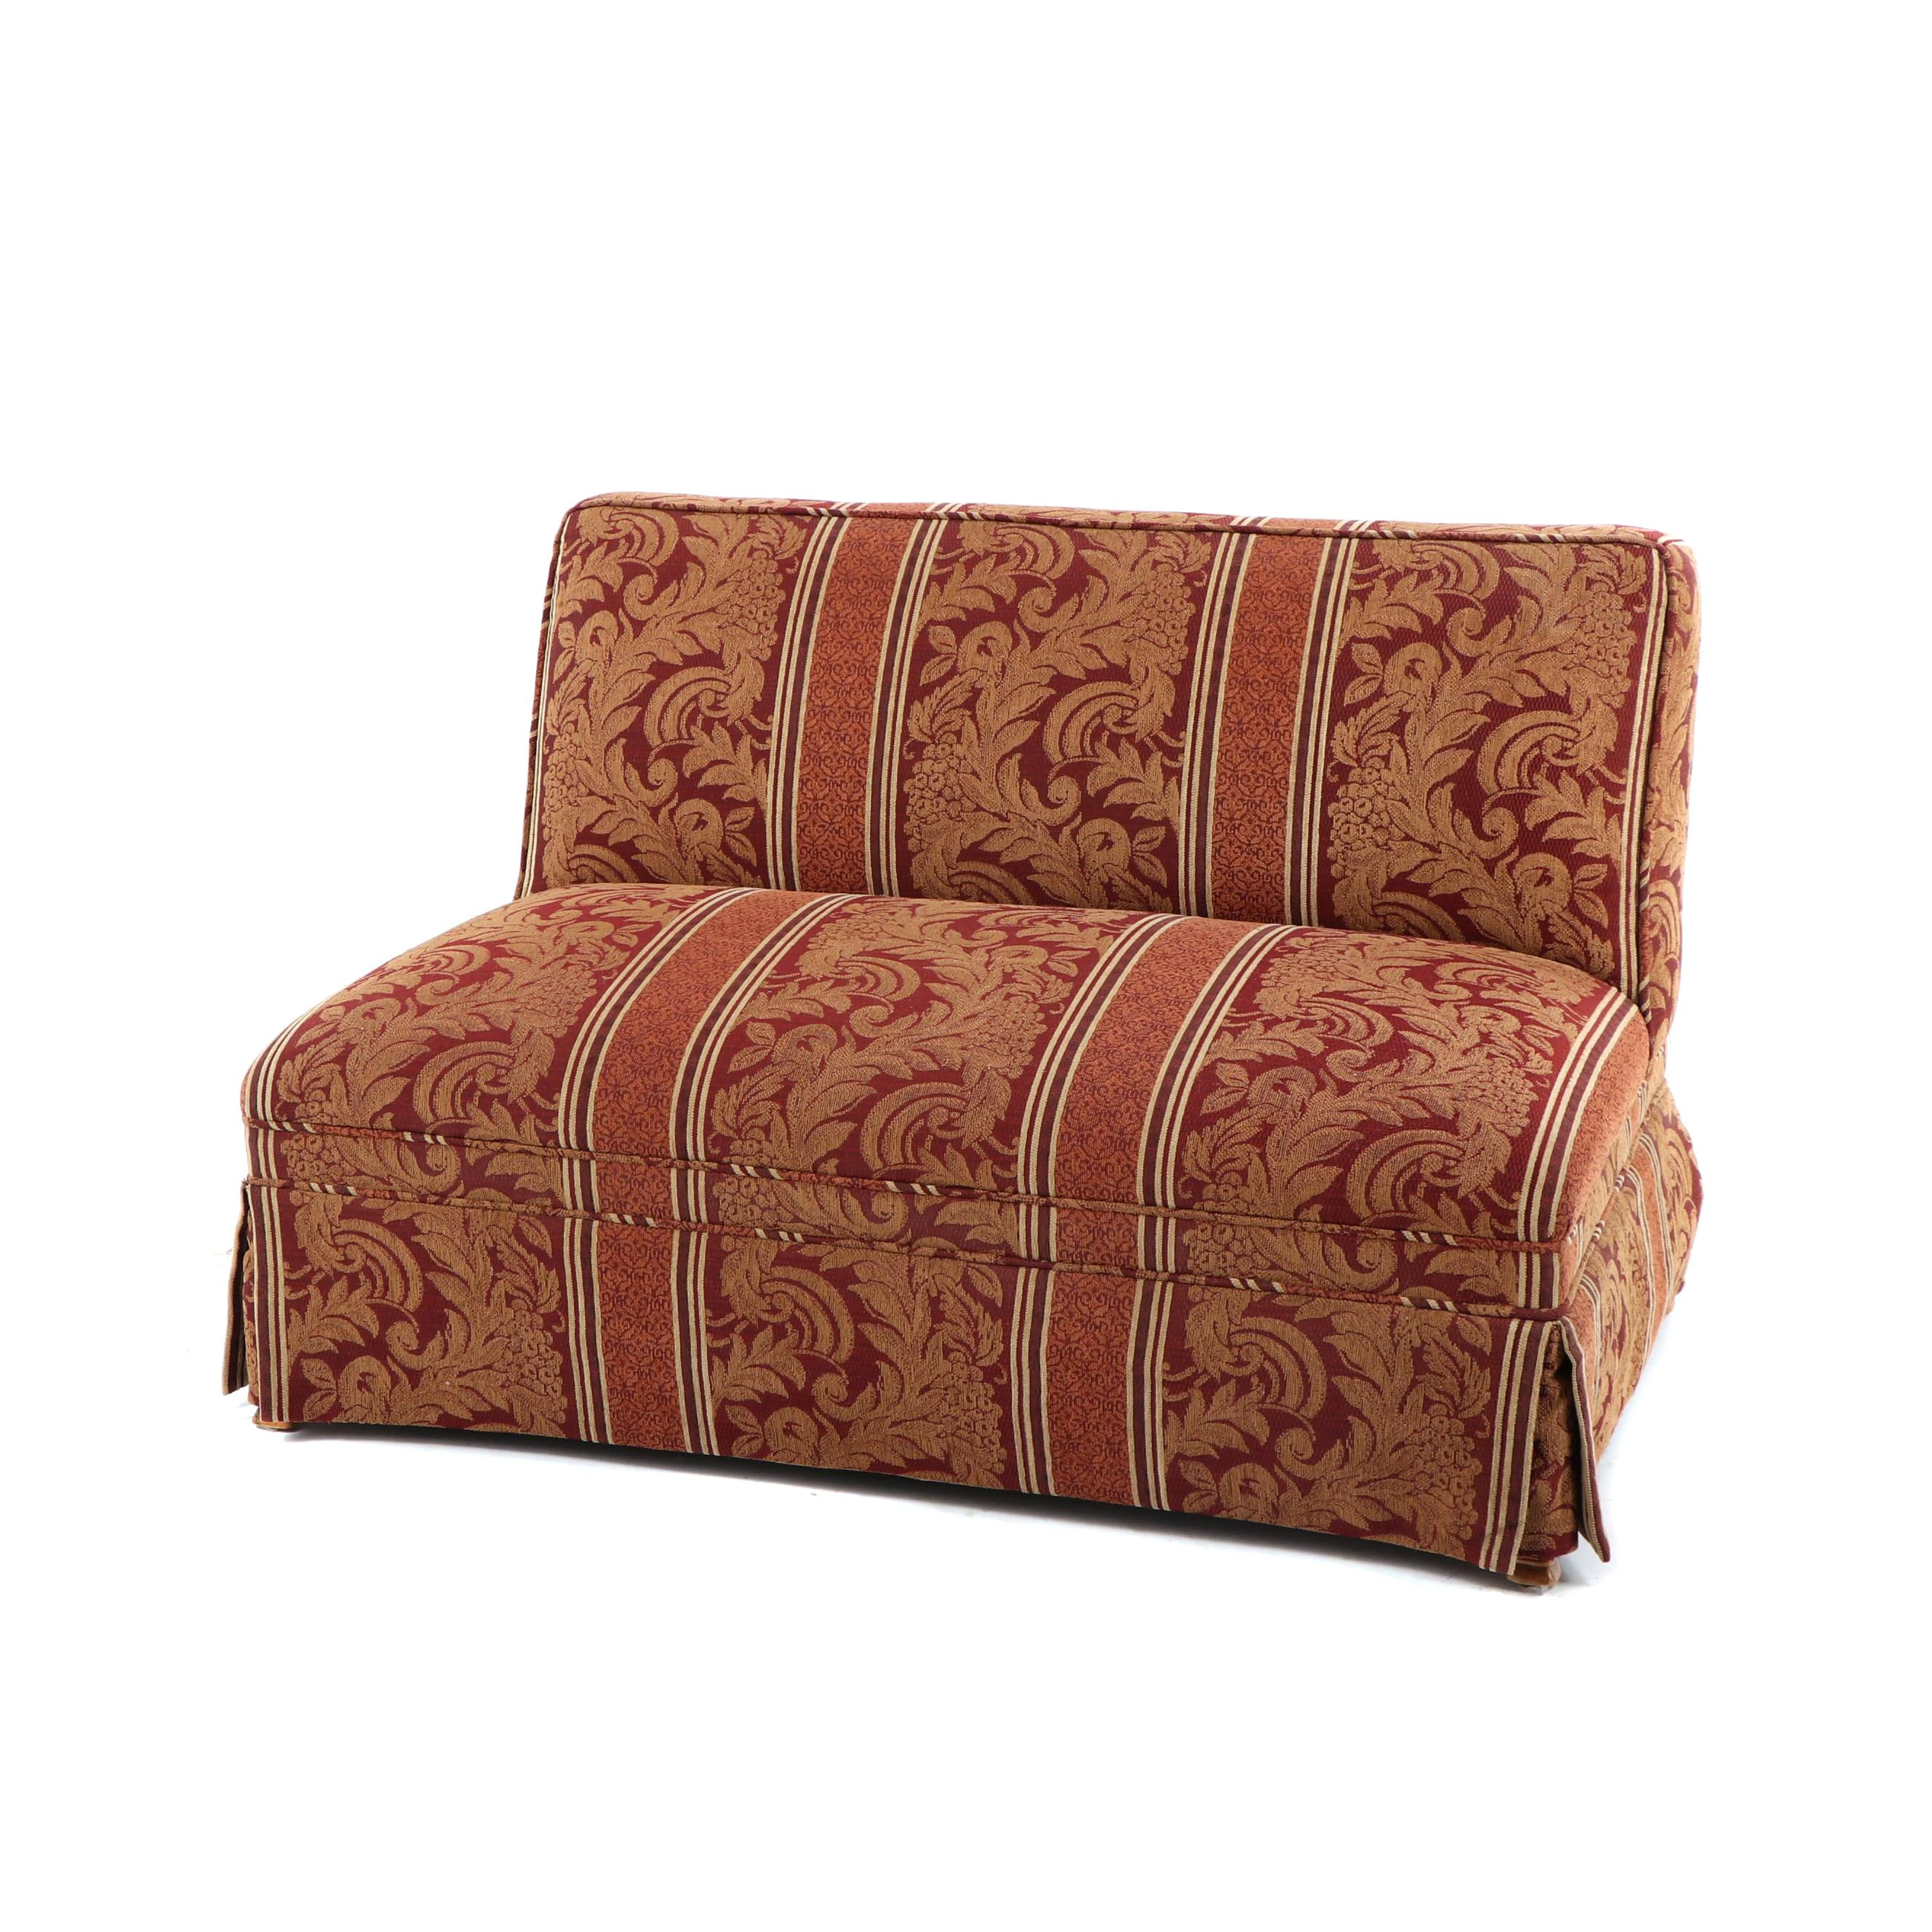 Contemporary Upholstered Loveseat